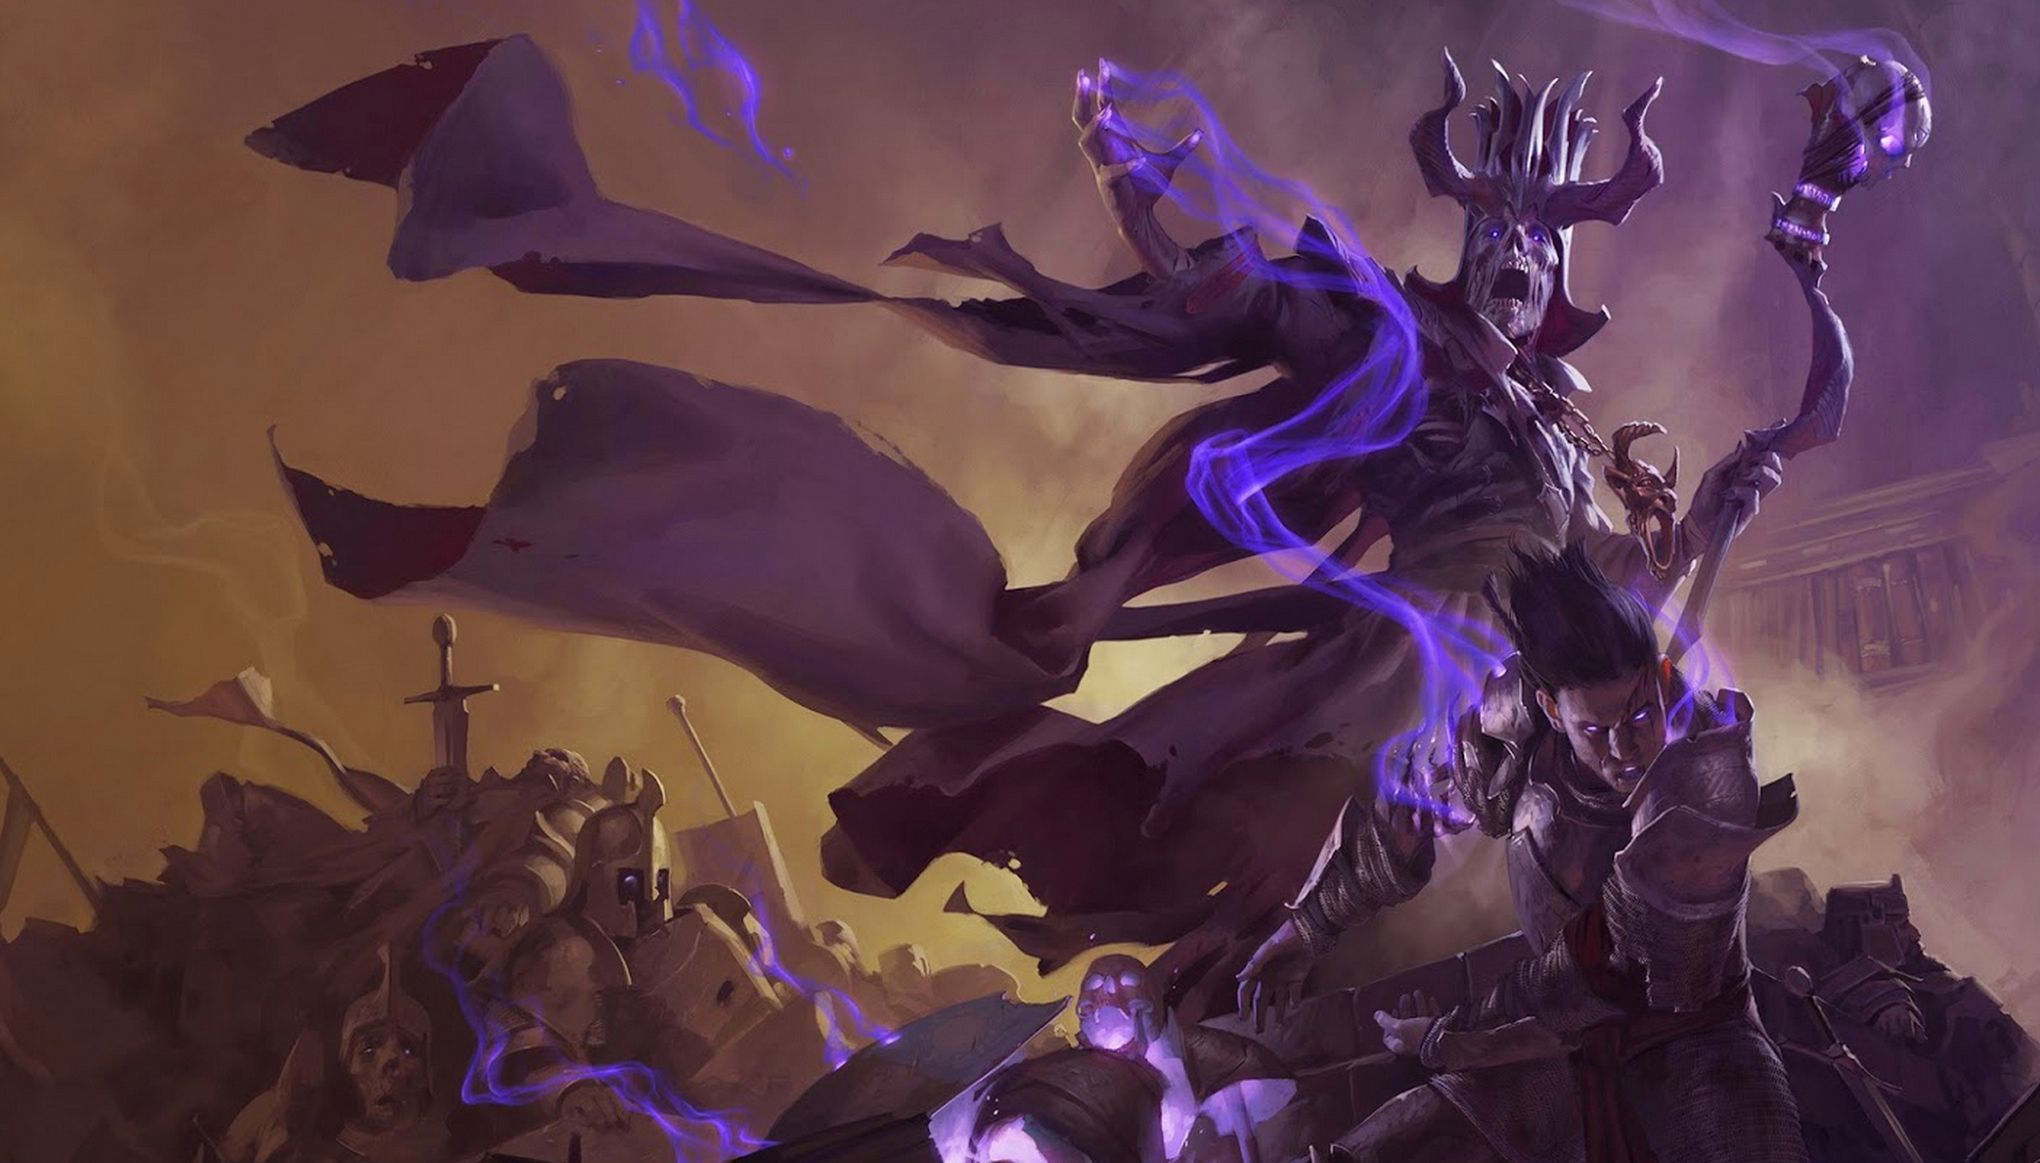 Dungeons & Dragons: 10 Pro Tips For Building A Powerful Character You Should Know